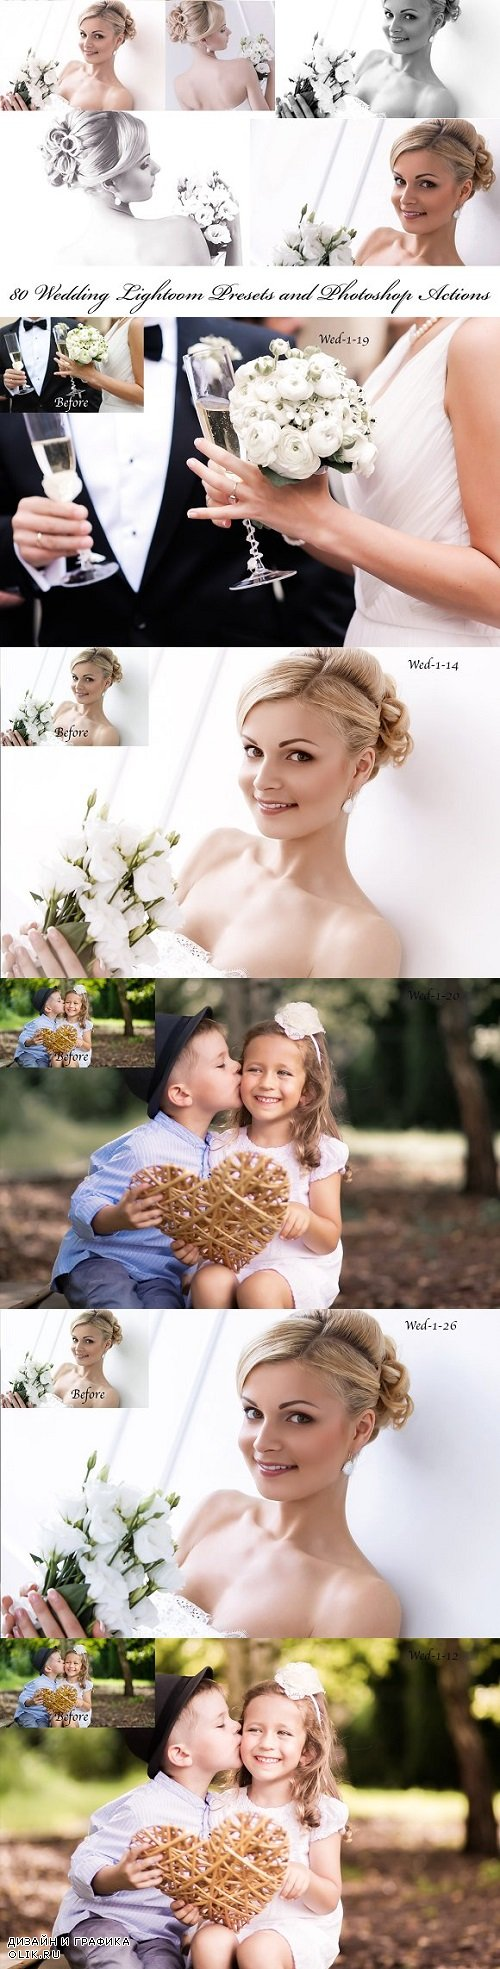 80 Wedding Presets and Actions 1984713